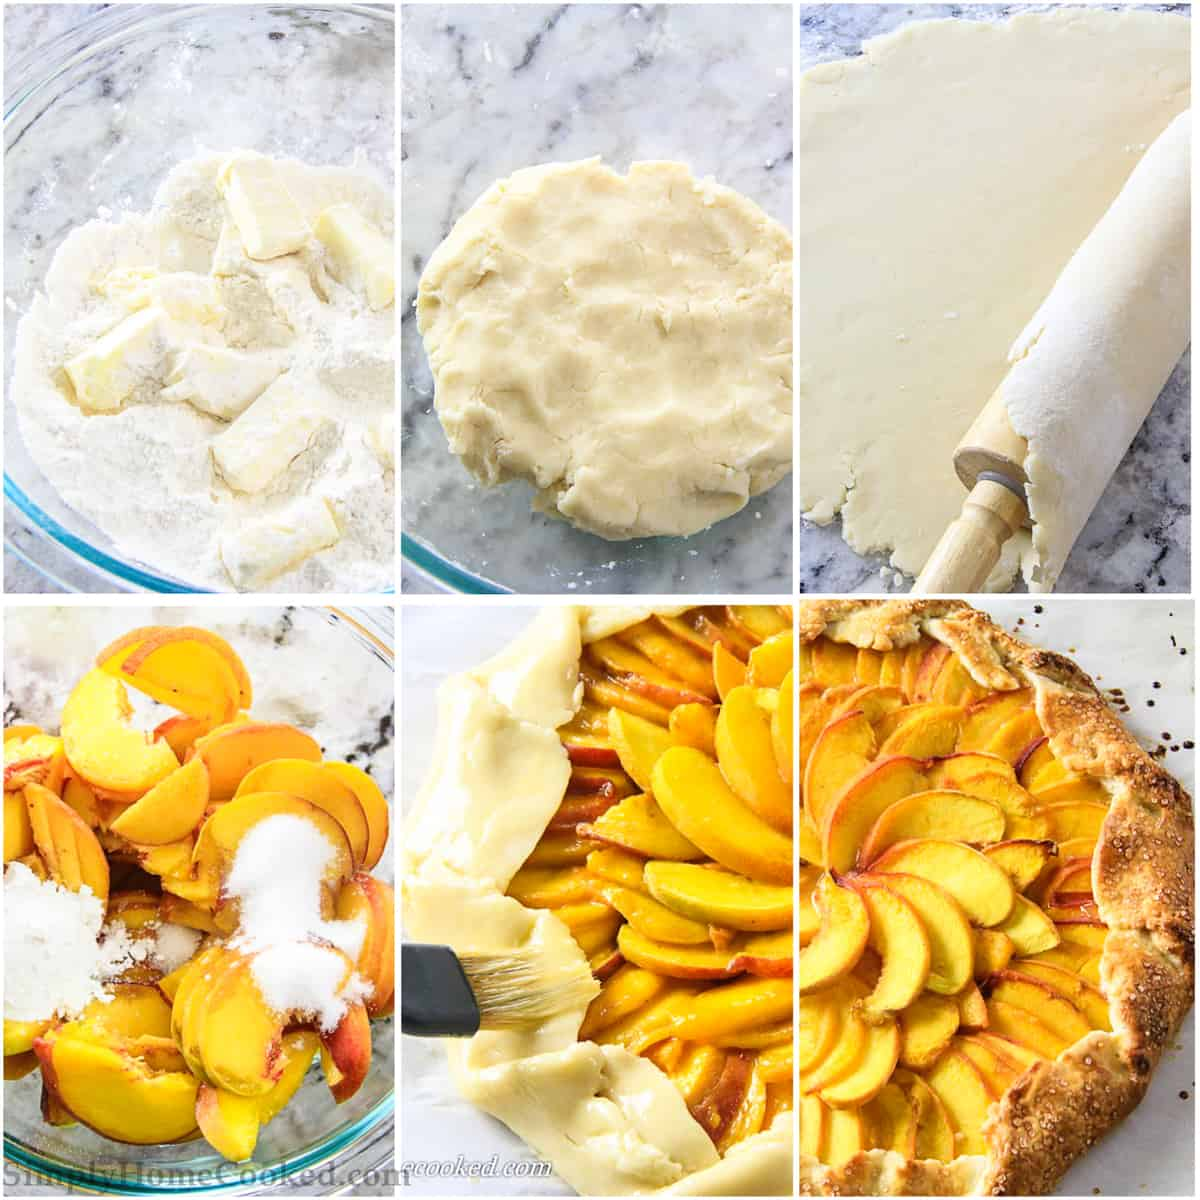 Photo collage of step by step process of making the dough and preparing the peach galette as well as the finished product laying on a marble surface